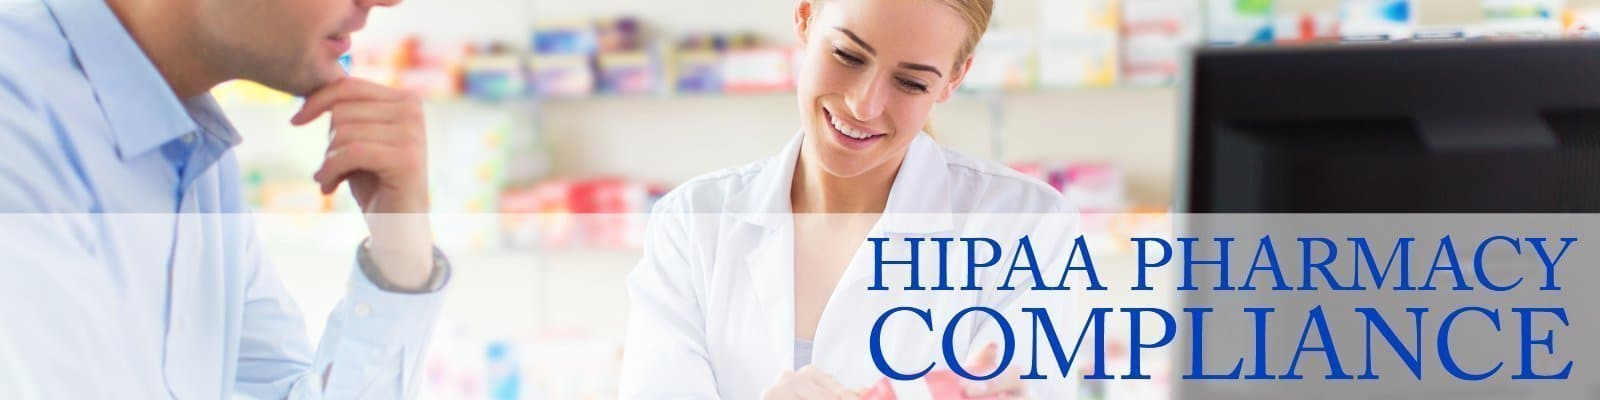 pharmacy hipaa compliance, independent pharmacy compliance, hipaa, hipaa pharmacy rules, pharmacy consulting